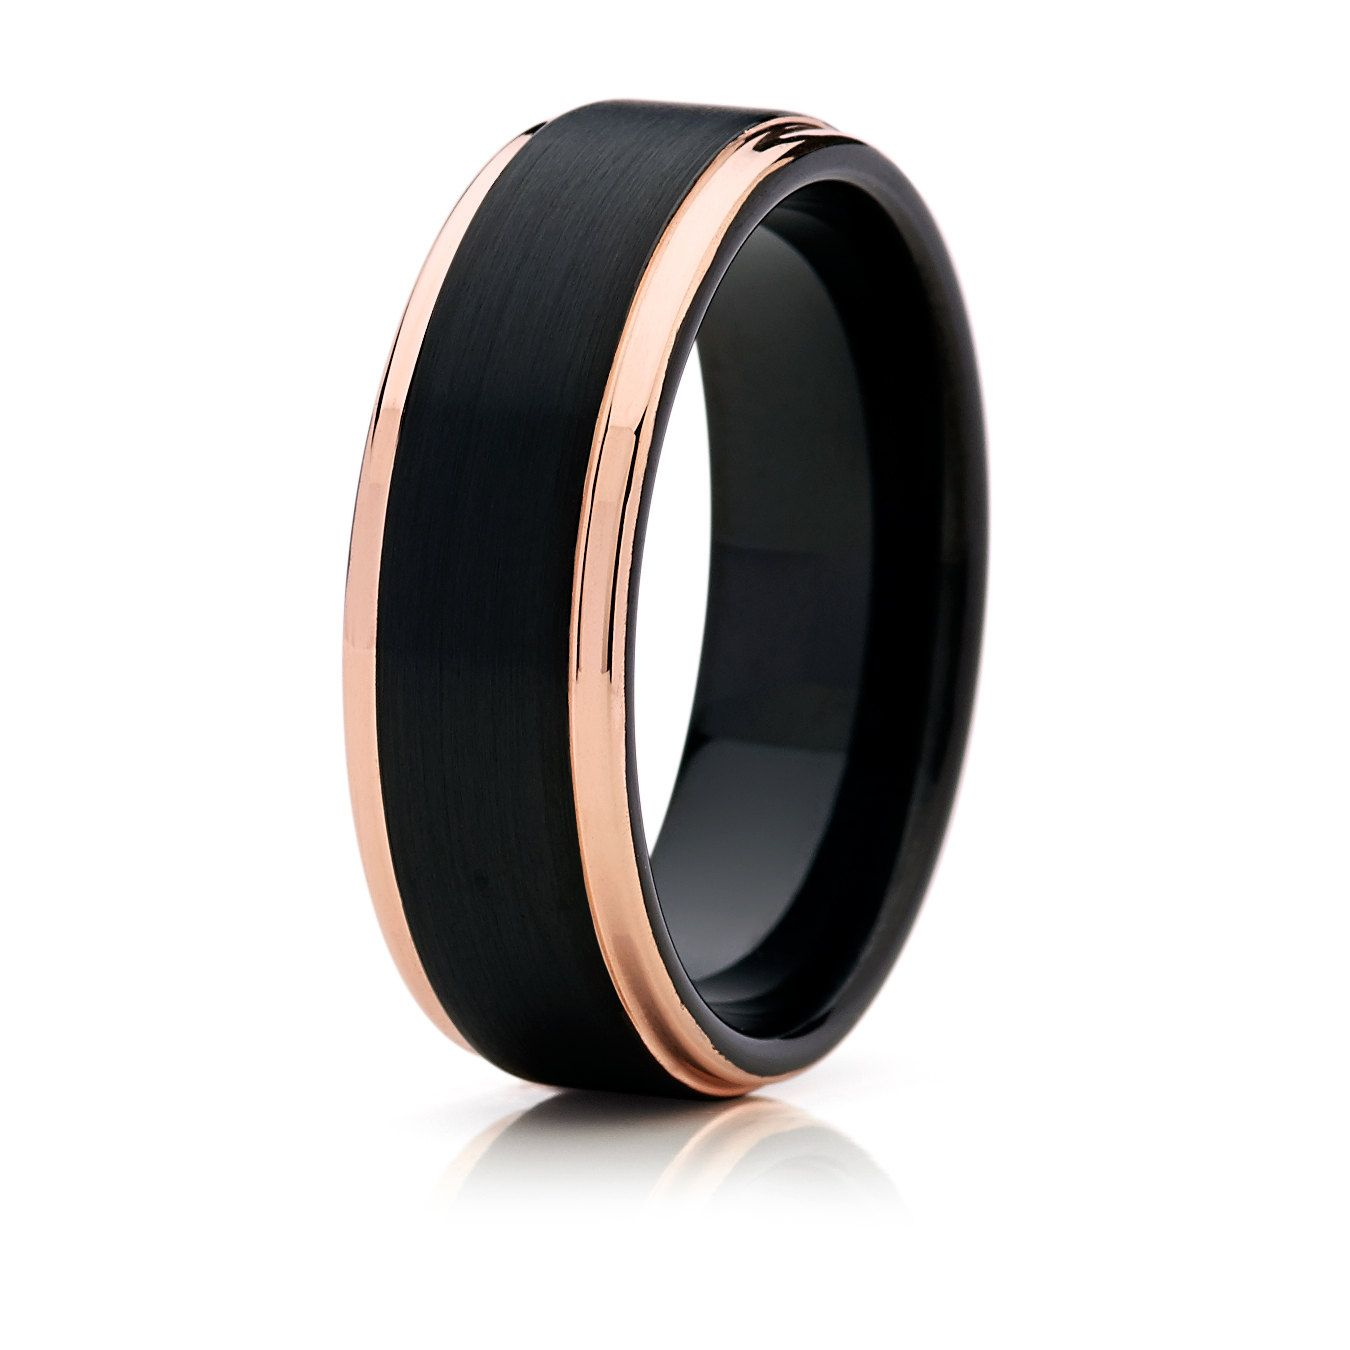 titanium rings band gold s him wedding bands black gift for ring engagement diamond men mens